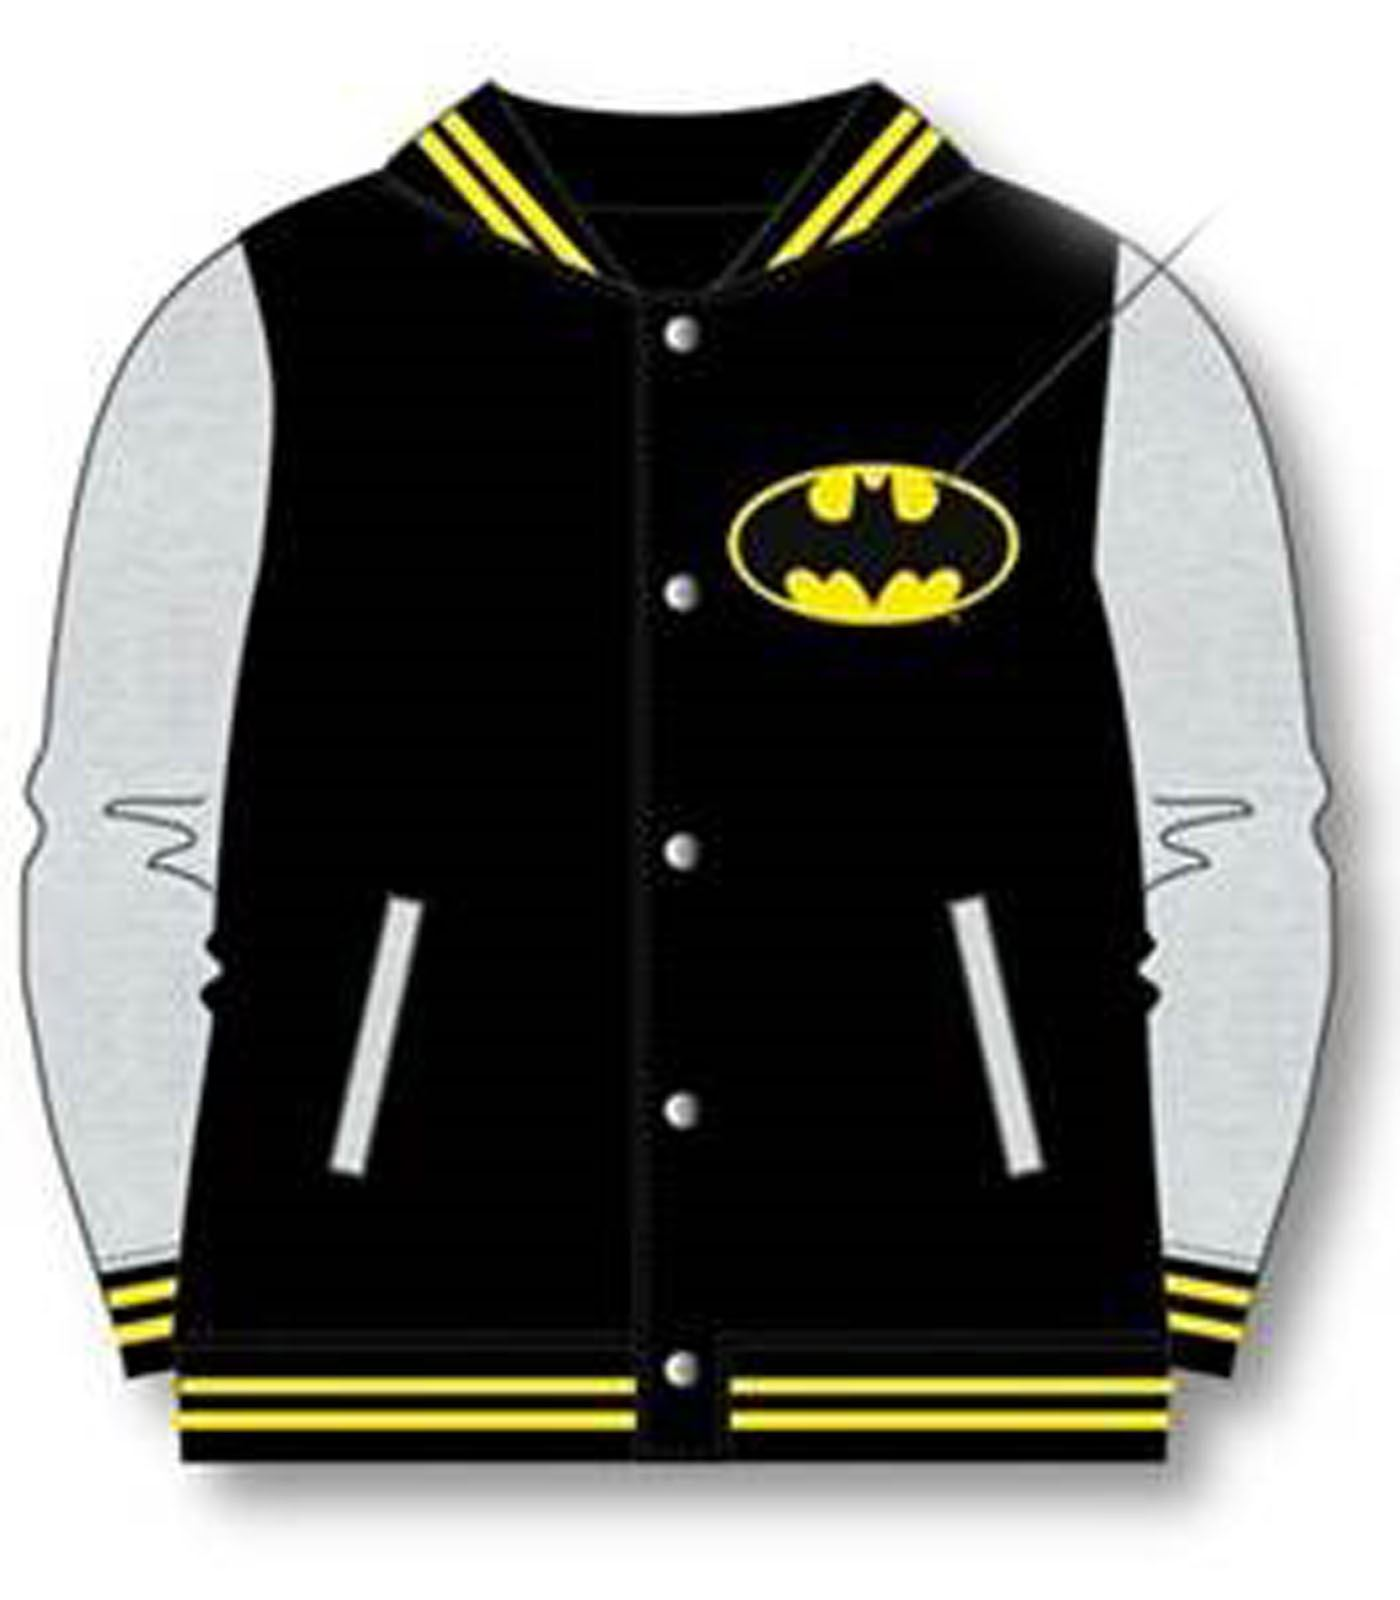 OFFICIAL KIDS BOYS BATMAN SUPERMAN BASEBALL JACKET COAT VARSITY ...